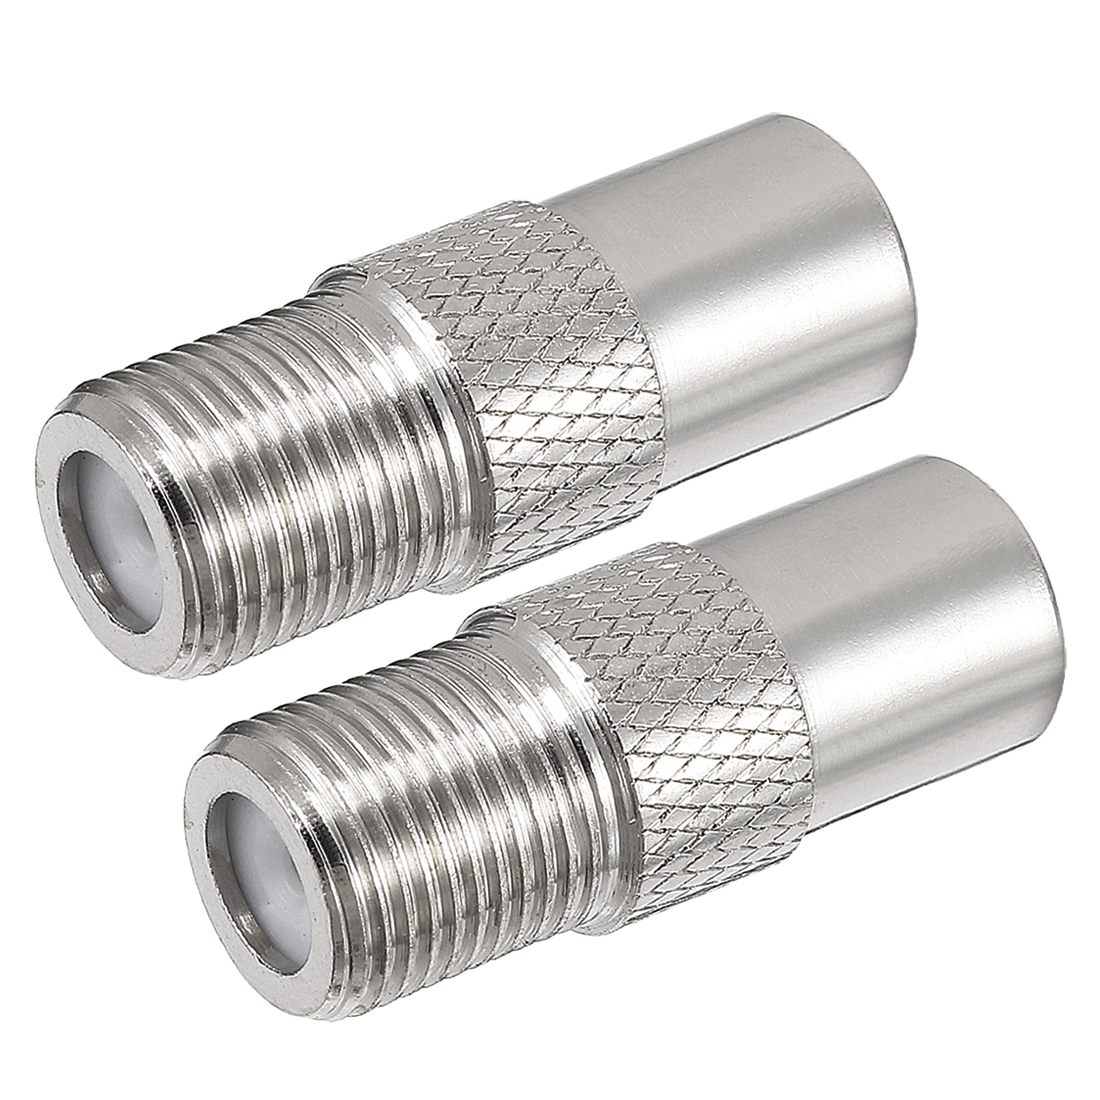 Silver Tone BSP F Female to PAL Male Jack RF Coaxial Connector 2 Pcs